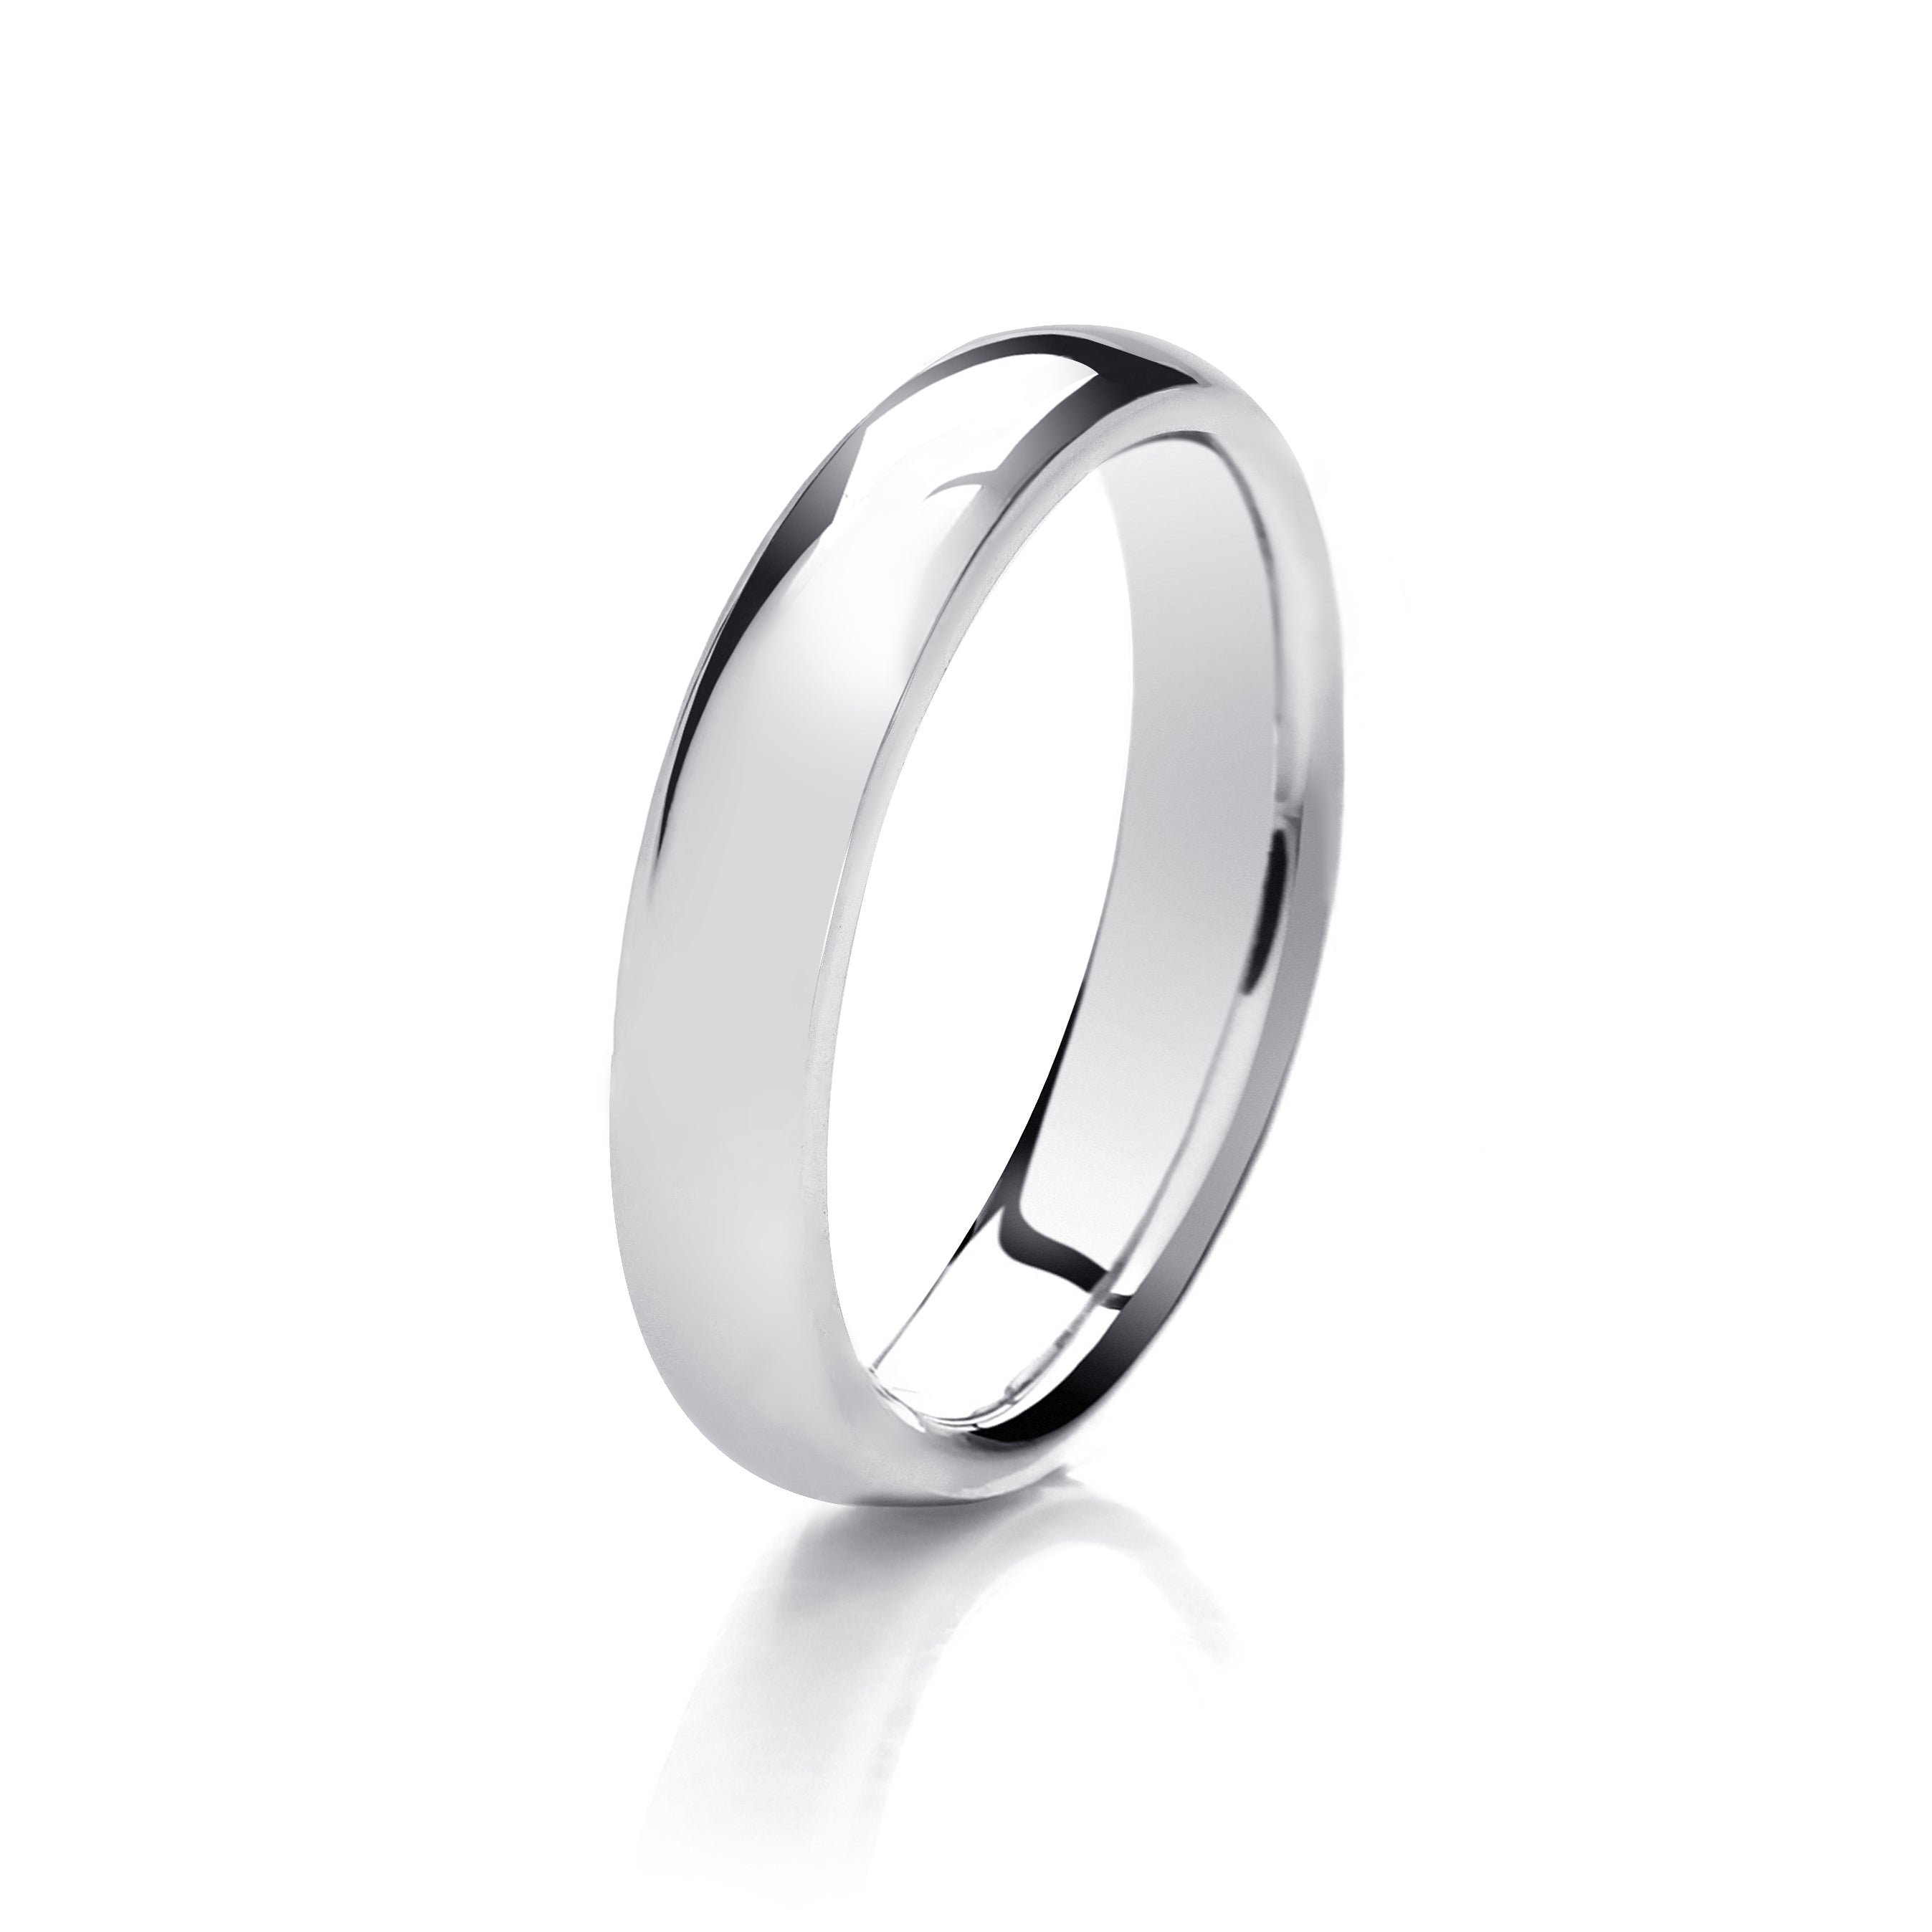 4mm Traditional Court Mens Wedding Ring - (Home Try-On)